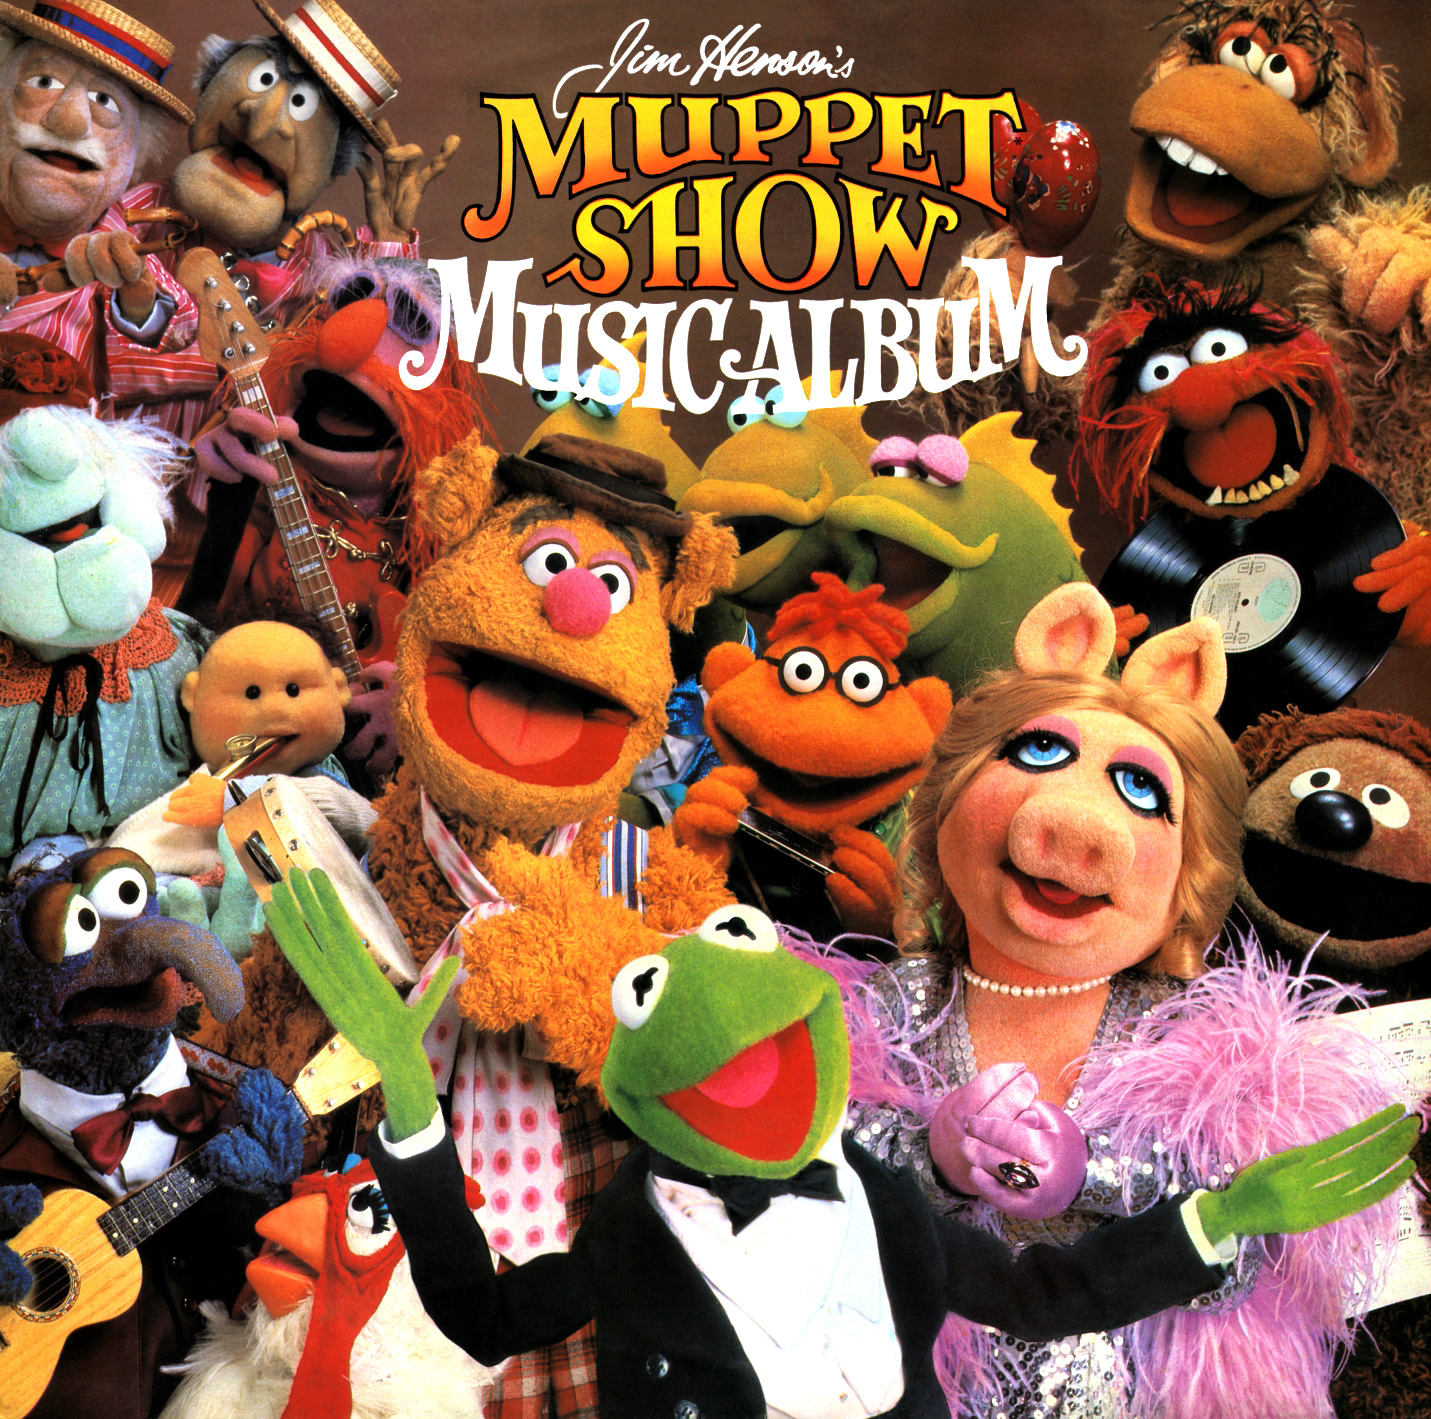 The Muppet Show Cartoon